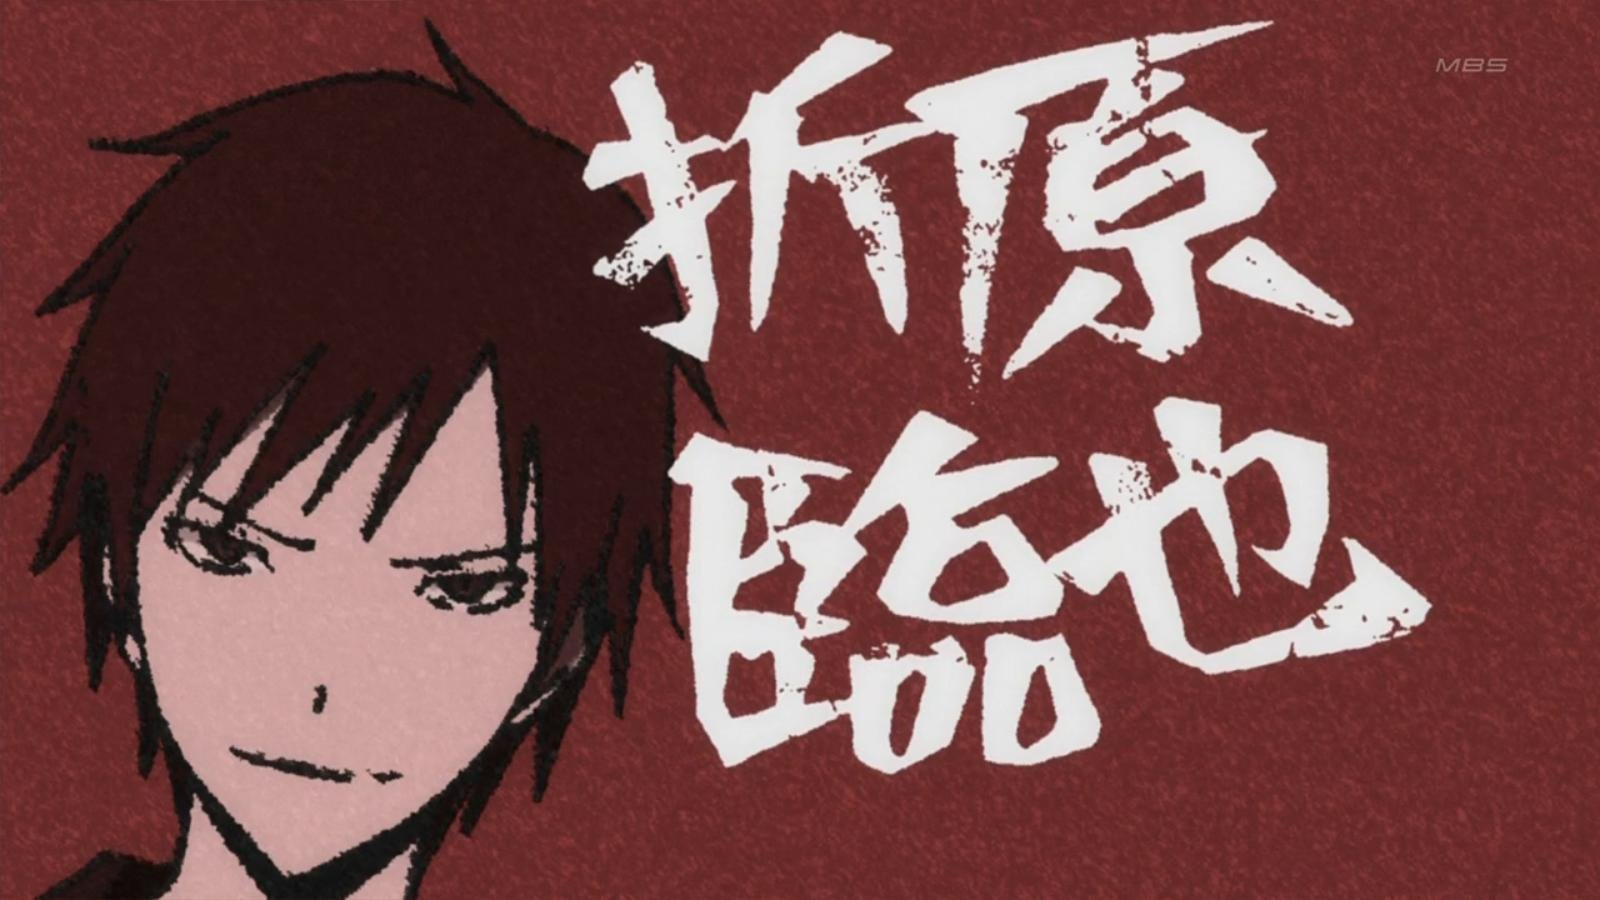 Download hd 1600x900 Izaya Orihara desktop wallpaper ID:321367 for free